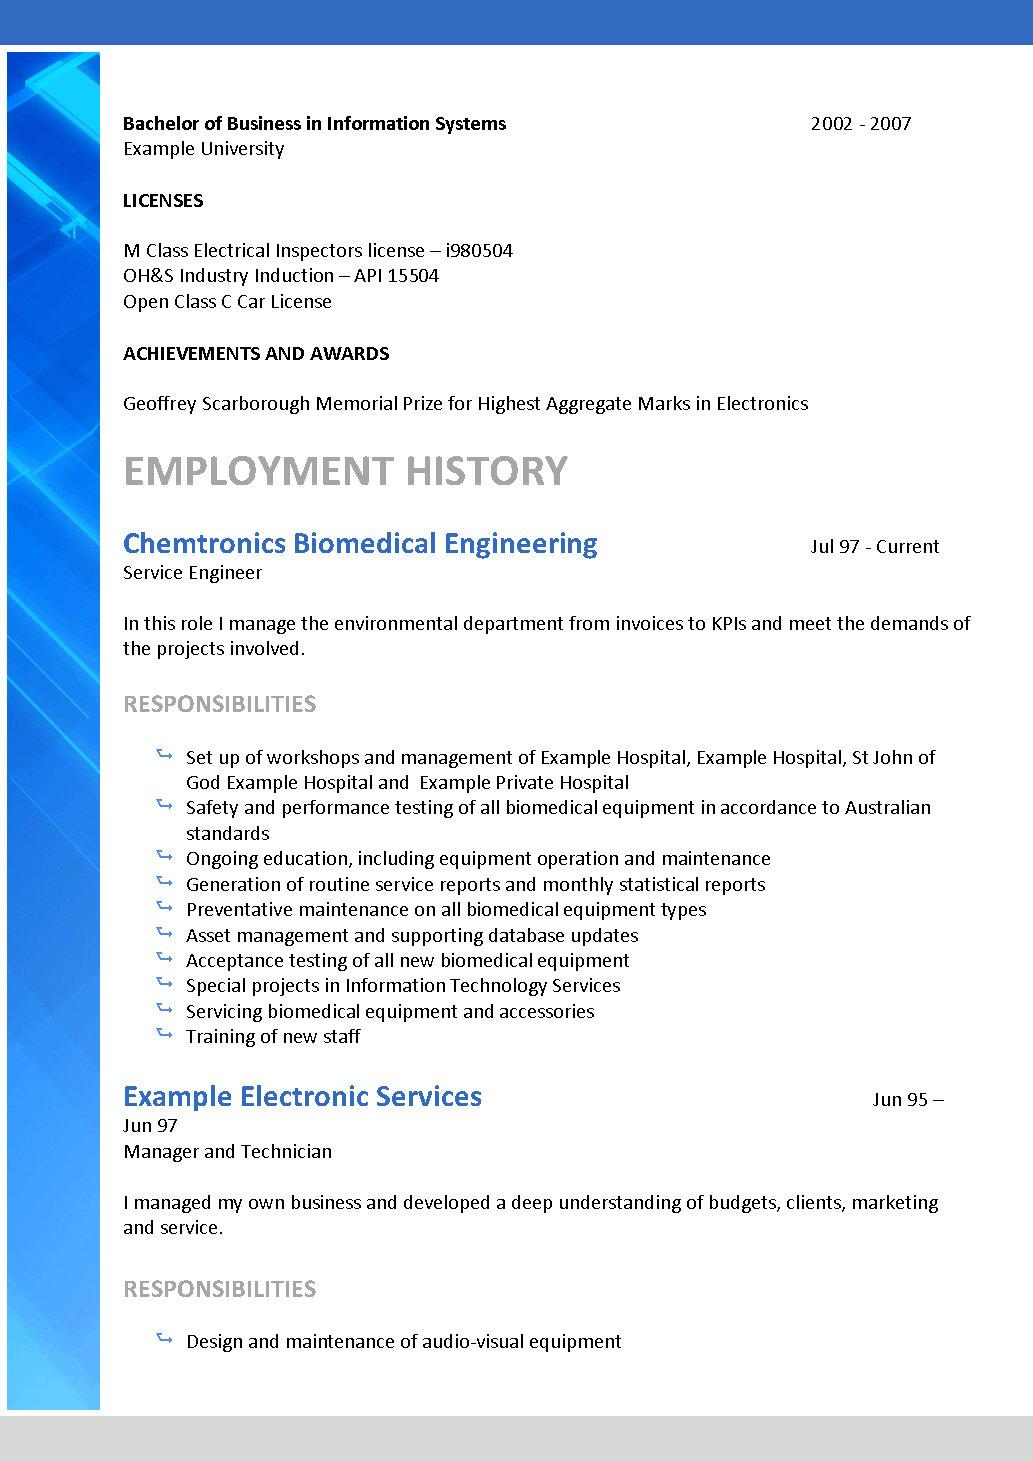 resume templates that stand out curriculum vitae resume templates that stand out resume templates microsoft word we can help